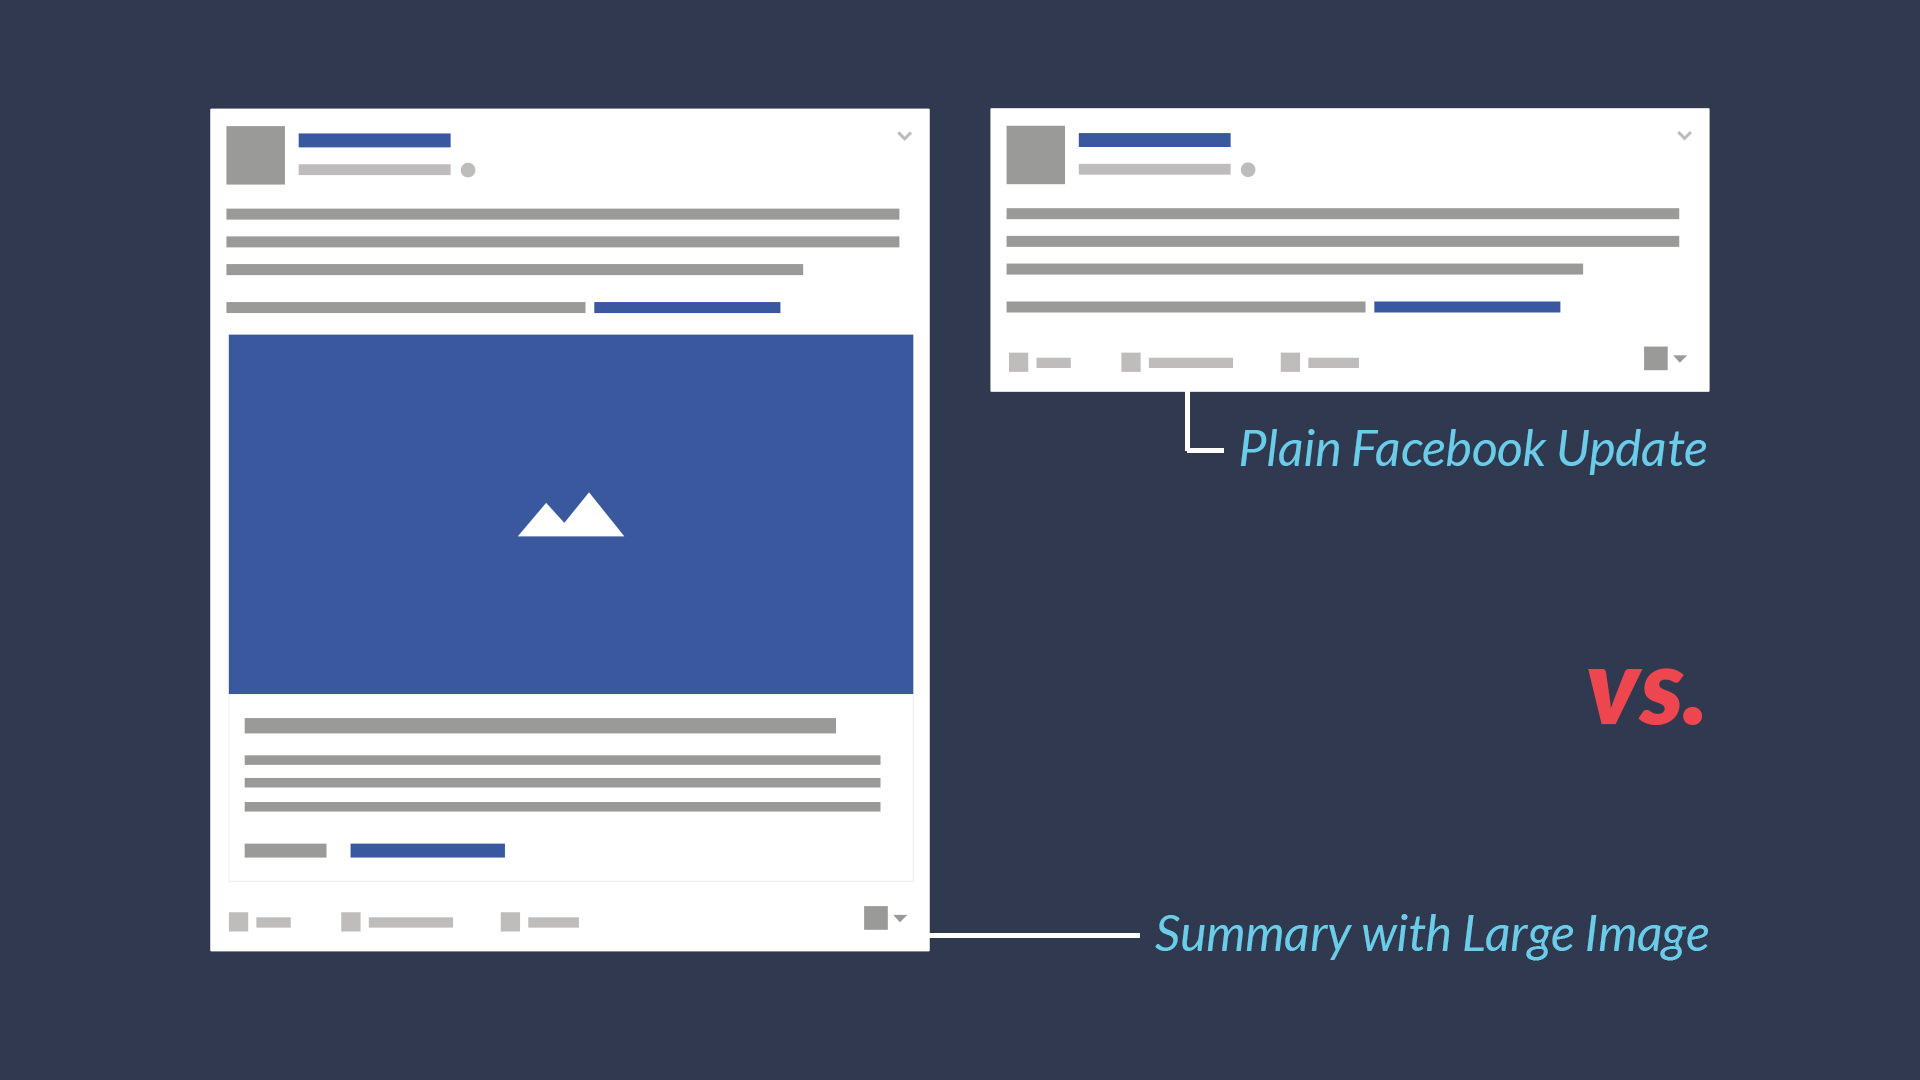 Plain Facebook Updates vs. Updates with Summaries & Large Images